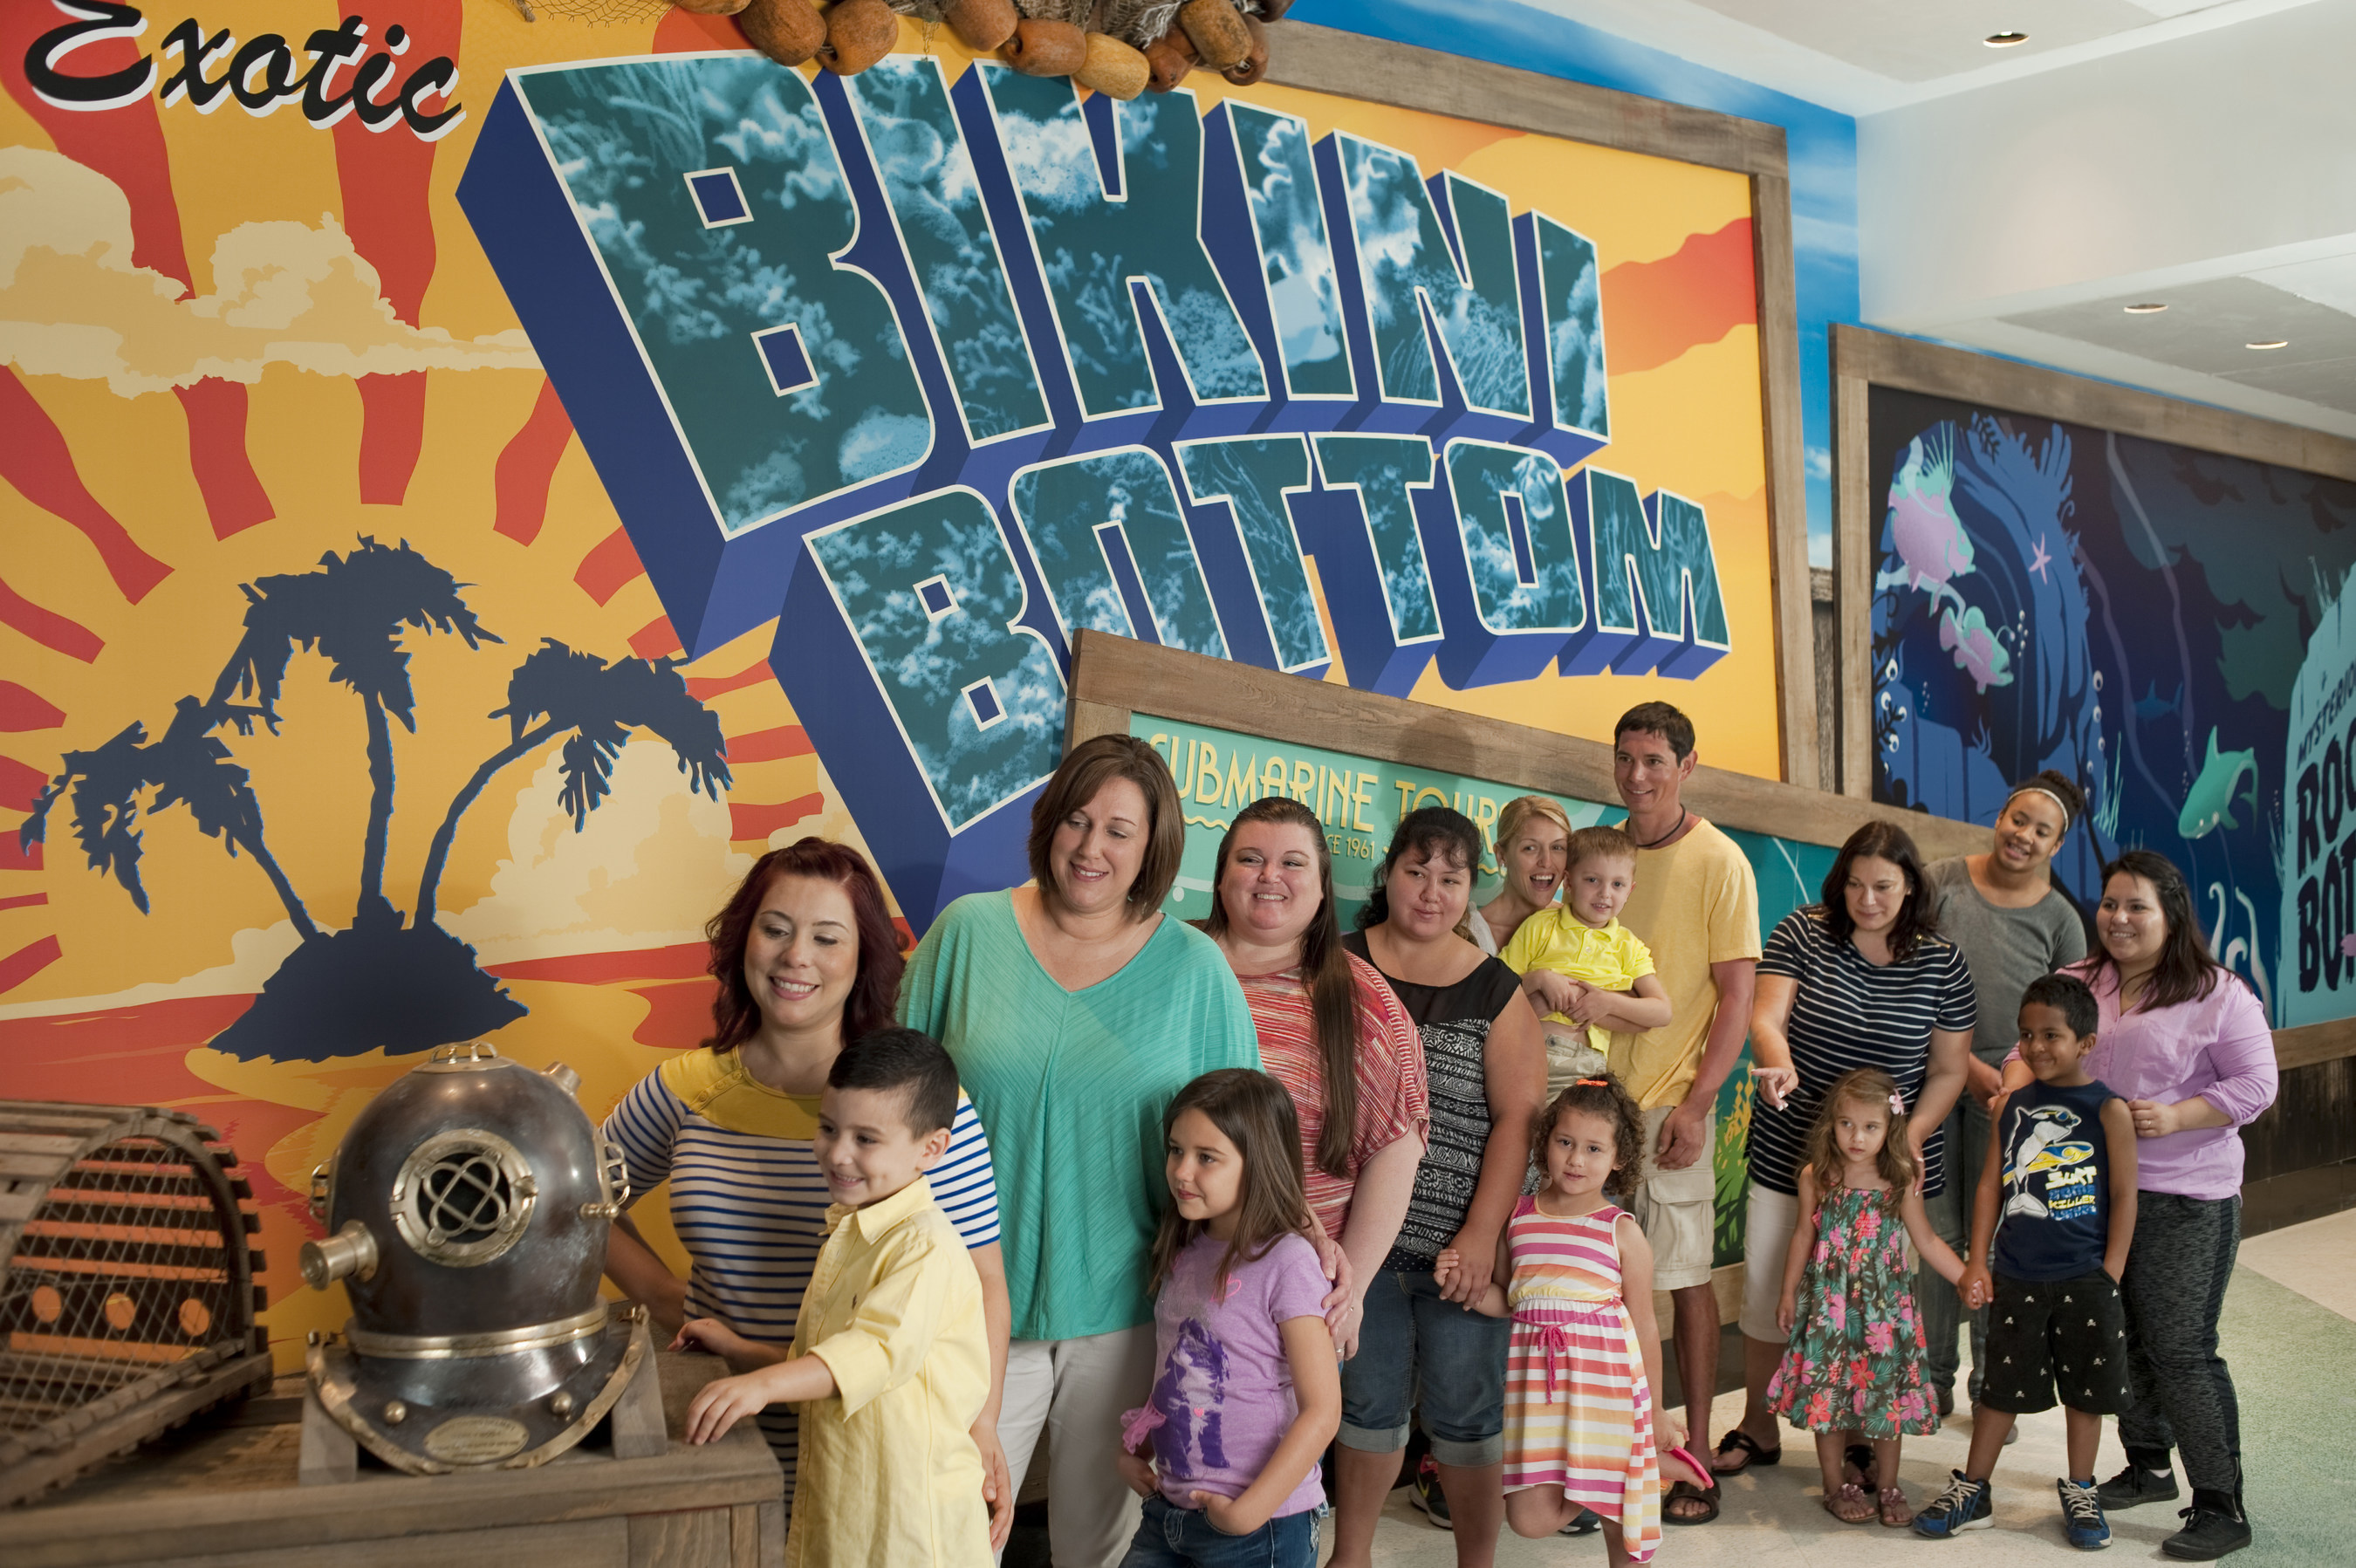 Children and parents view a brass dive helmet and crab trap near the Bikini Bottom mural before entering the ...